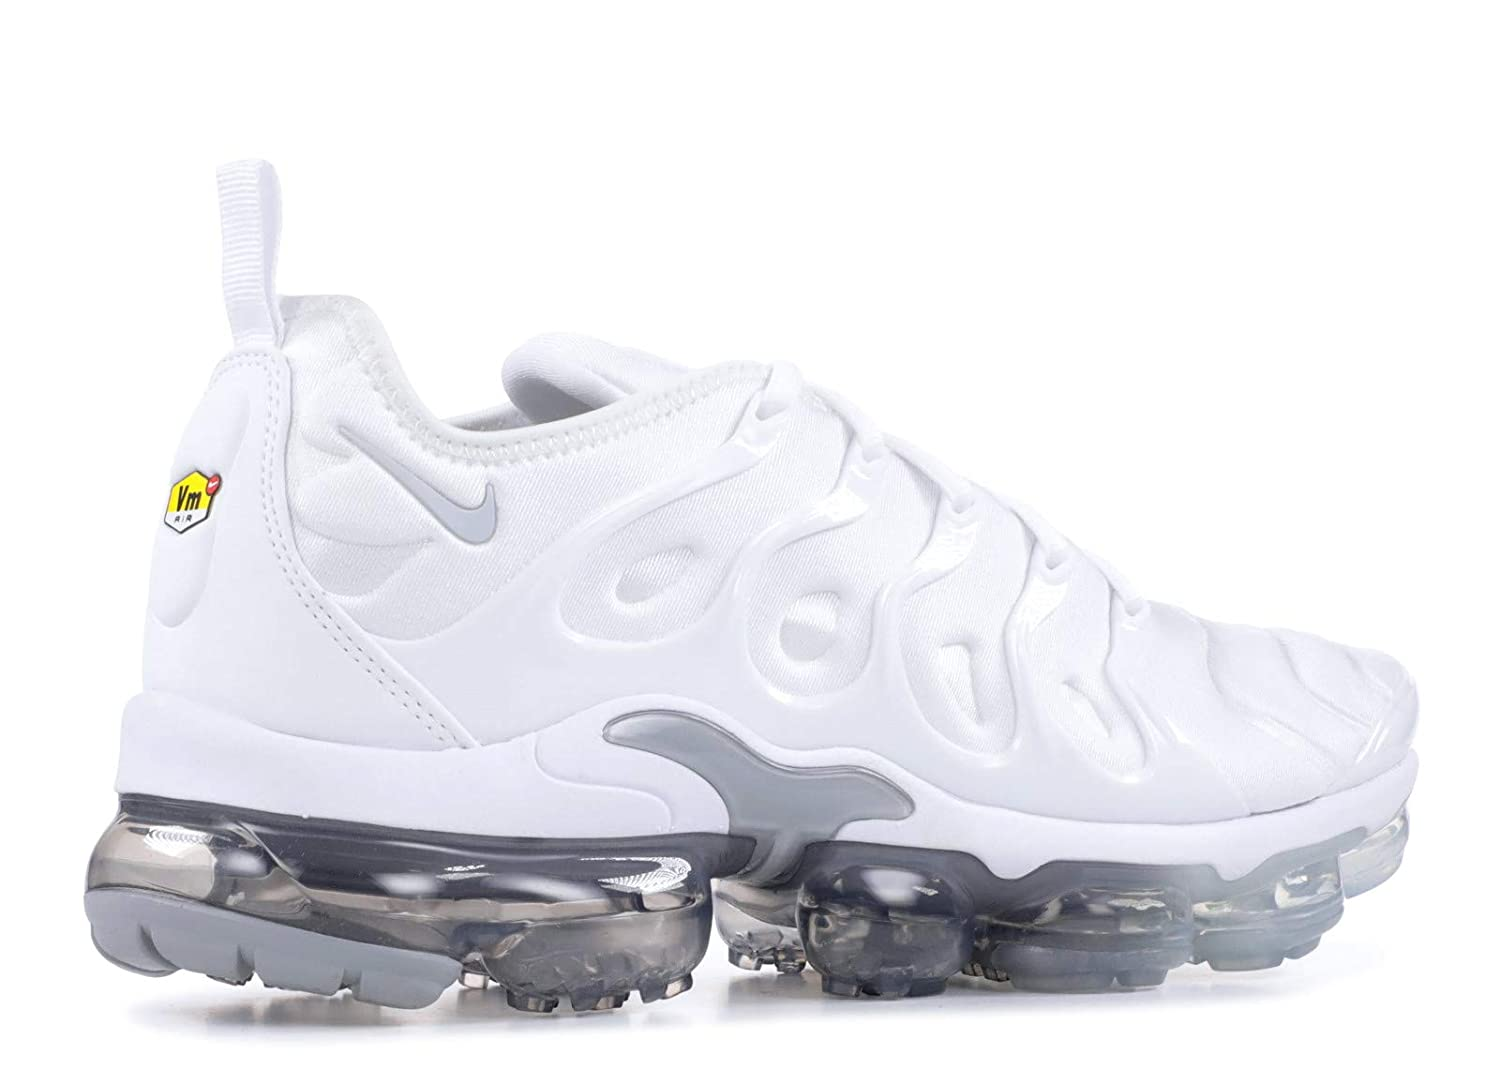 new arrival ac730 41685 Nike Air Vapormax Plus